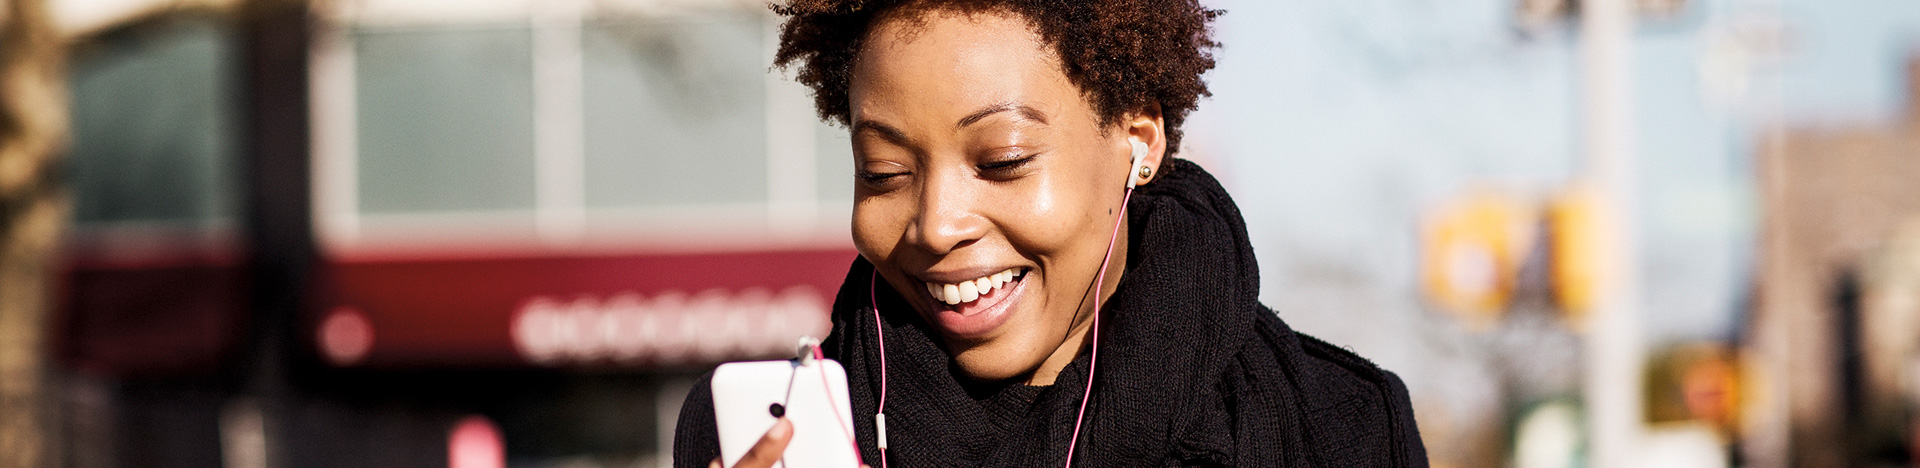 Photograph of person with headphones looking at mobile device looking at mobile phone